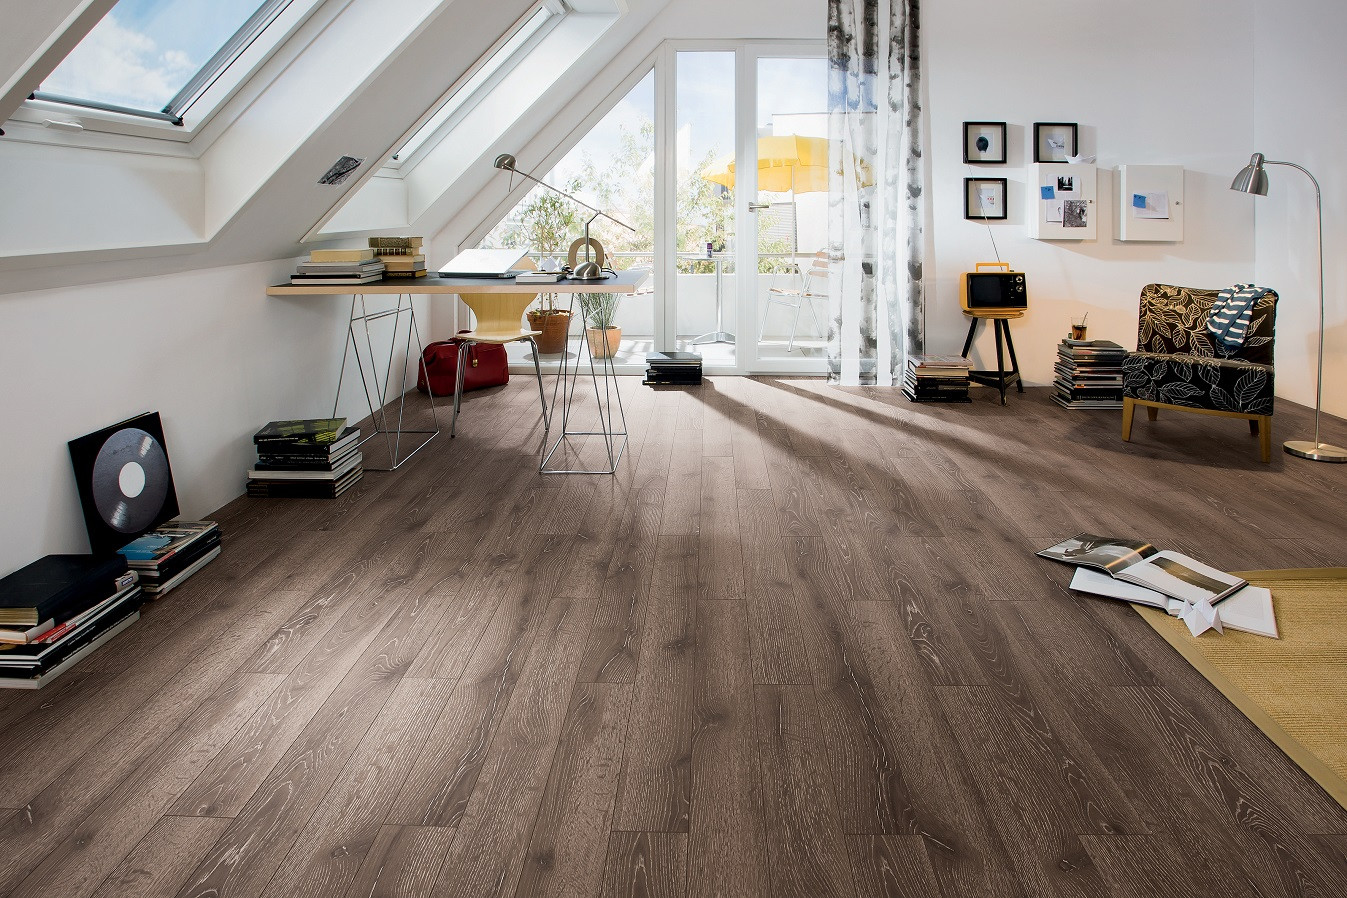 The Cheapest Hardwood Flooring Of Ca Laminate Flooring California Wood Floor Boards San Jose Los Regarding Ca Best Place to Buy Hardwood Flooring